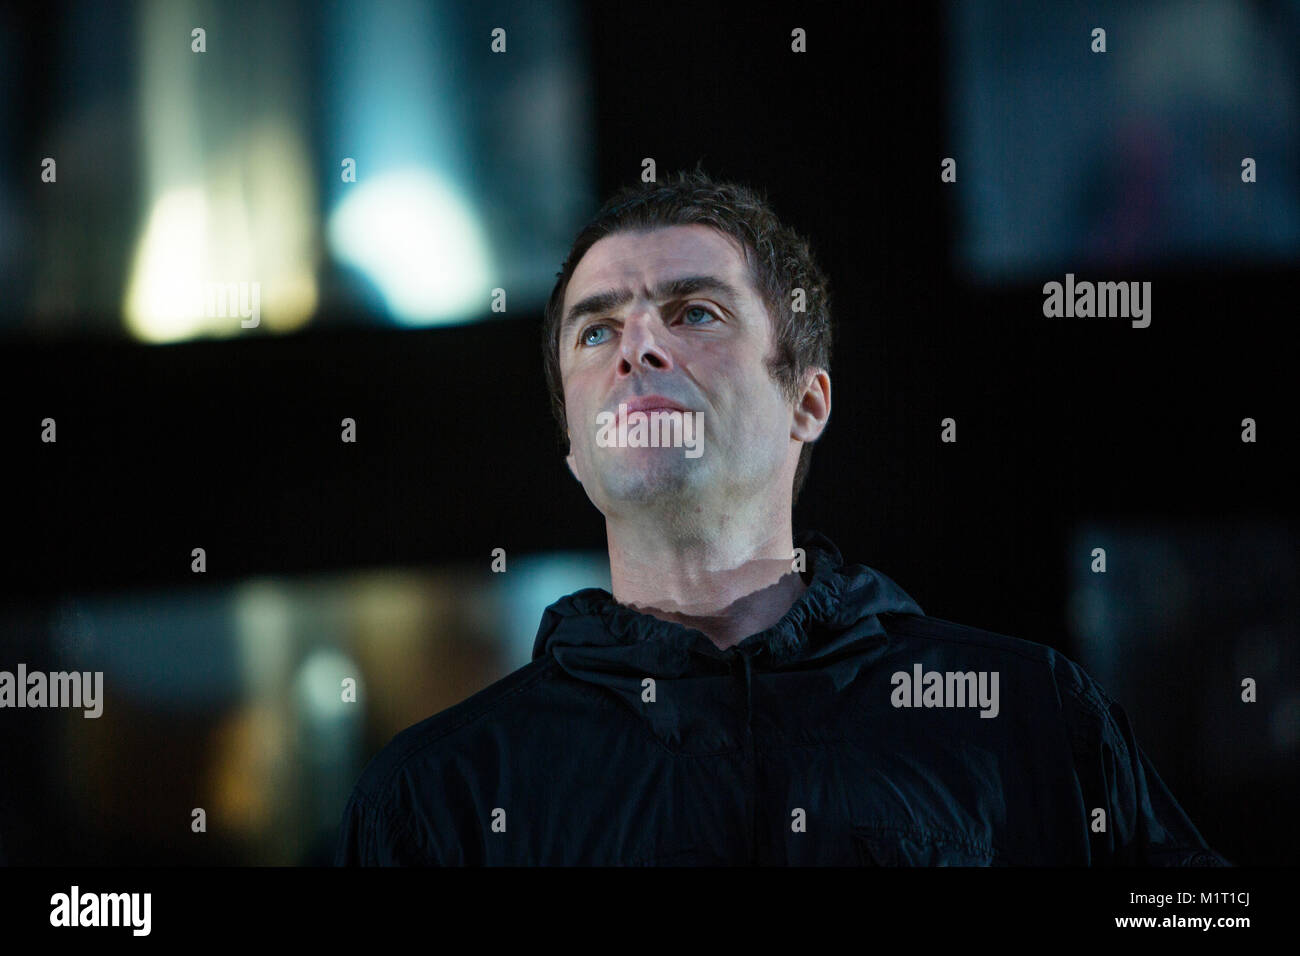 Norway, Bergen - June 14, 2017. The English singer, songwriter and musician Liam Gallagher performs a live concert - Stock Image